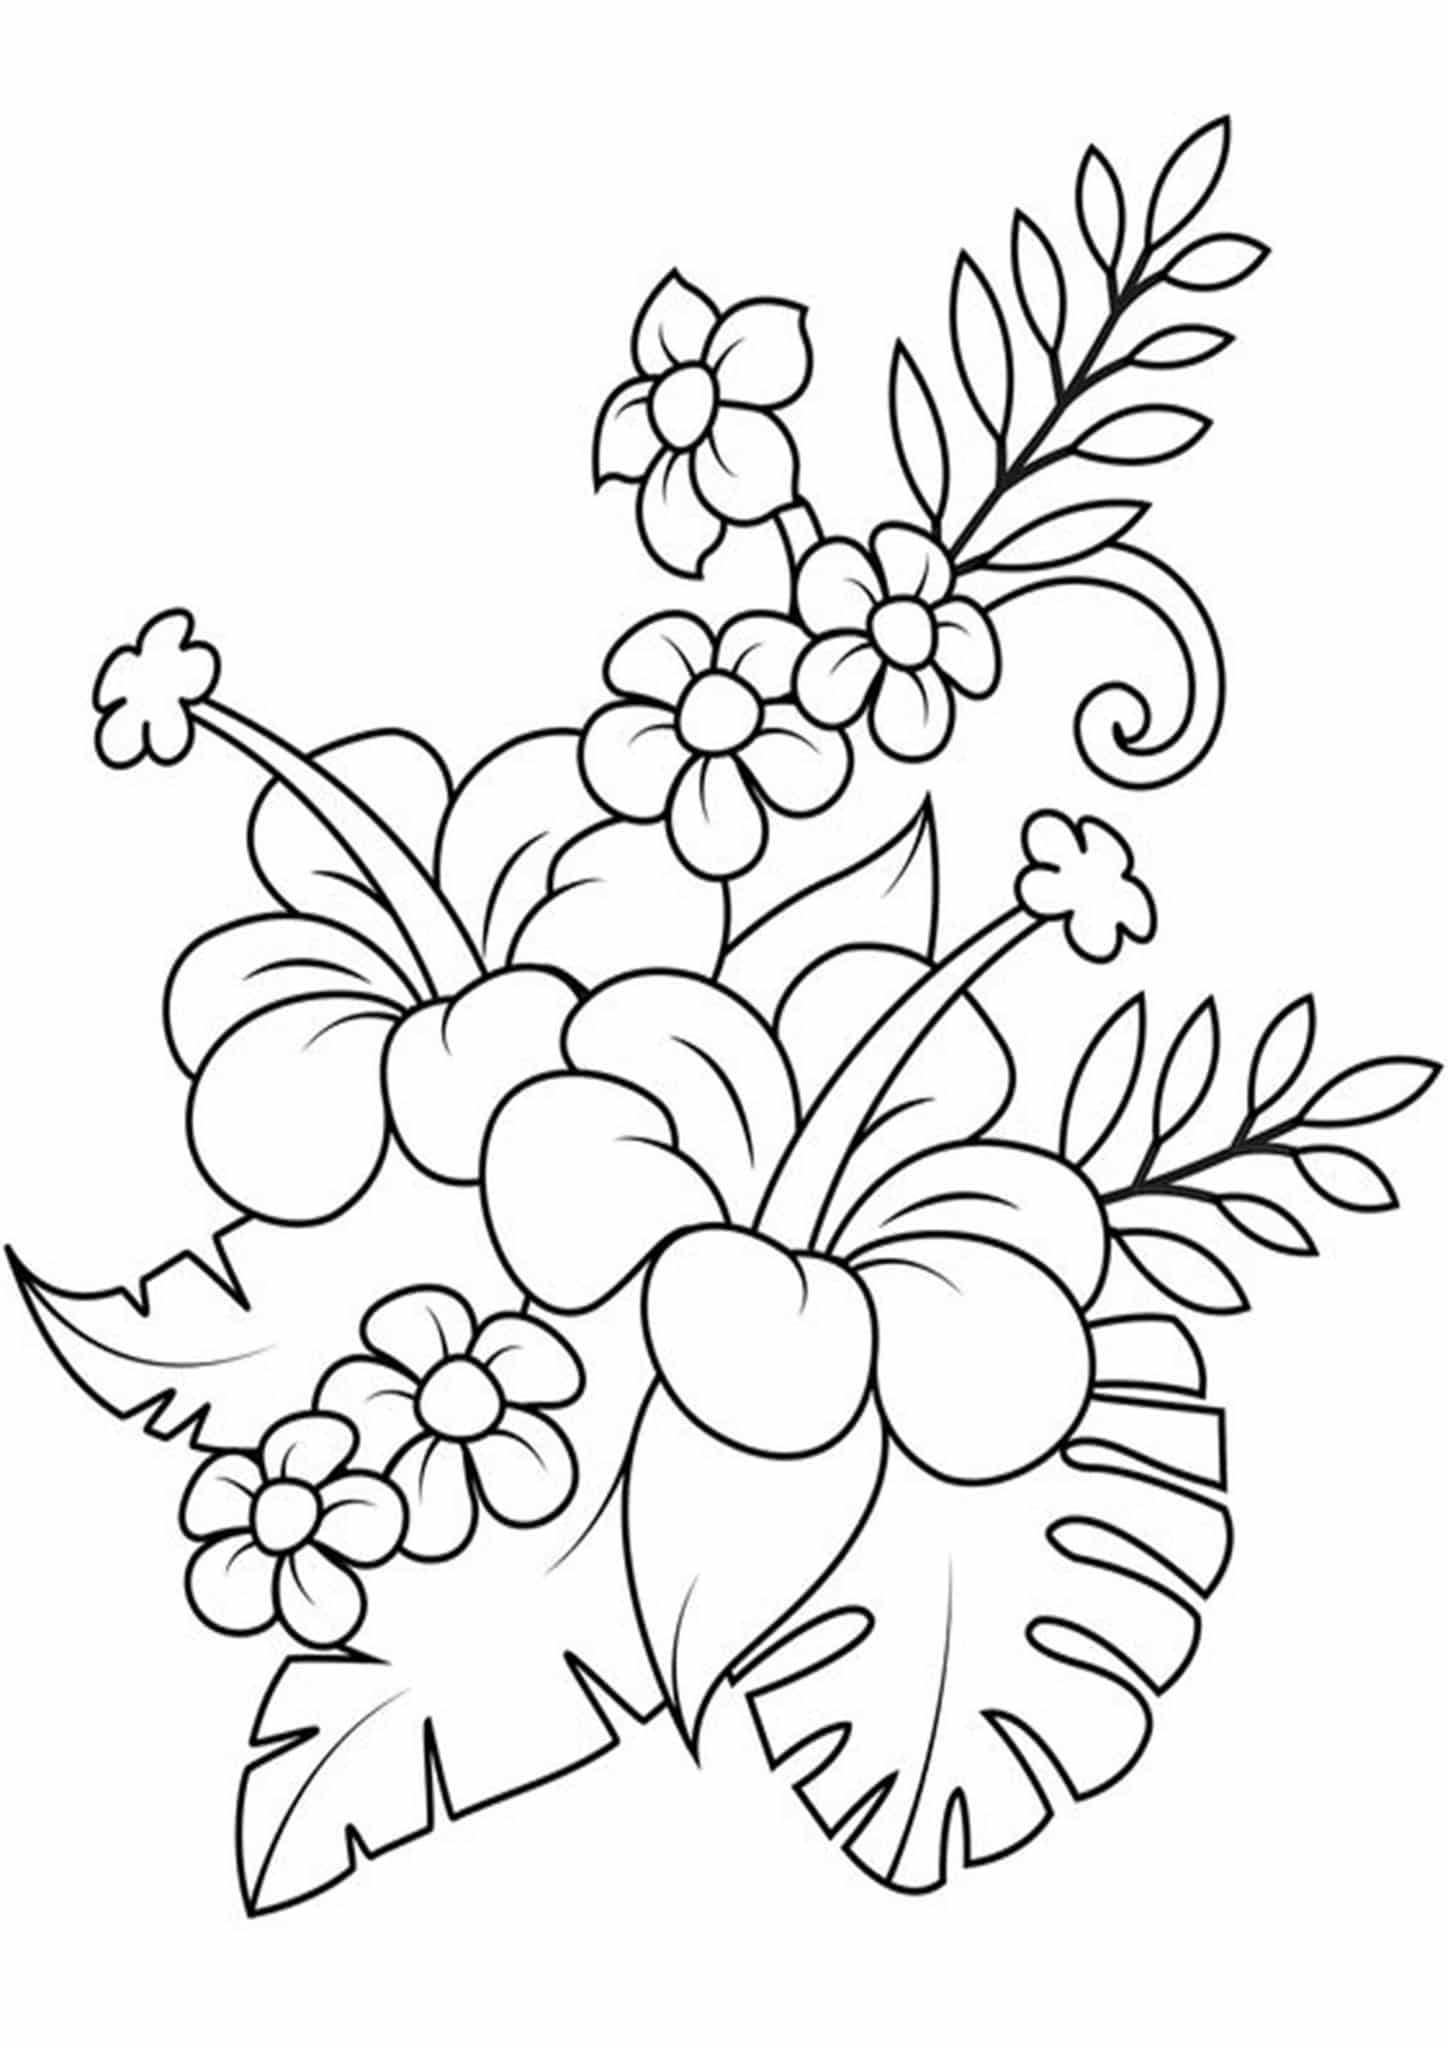 coloring sheets of flowers free easy to print flower coloring pages tulamama sheets flowers of coloring